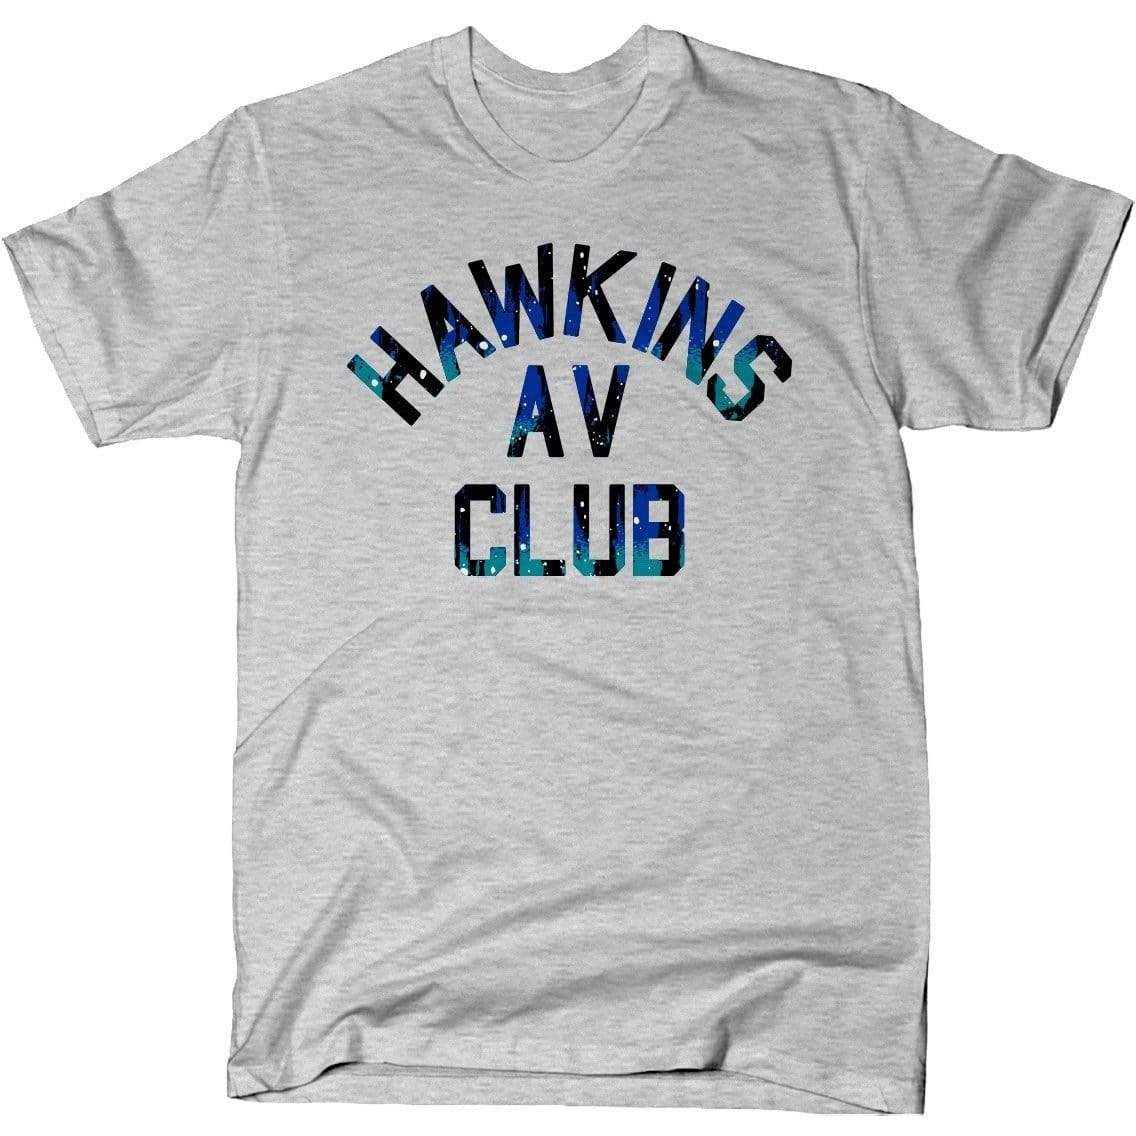 Hawkins AV Club shirt Snorgtees Clothing/Accessories